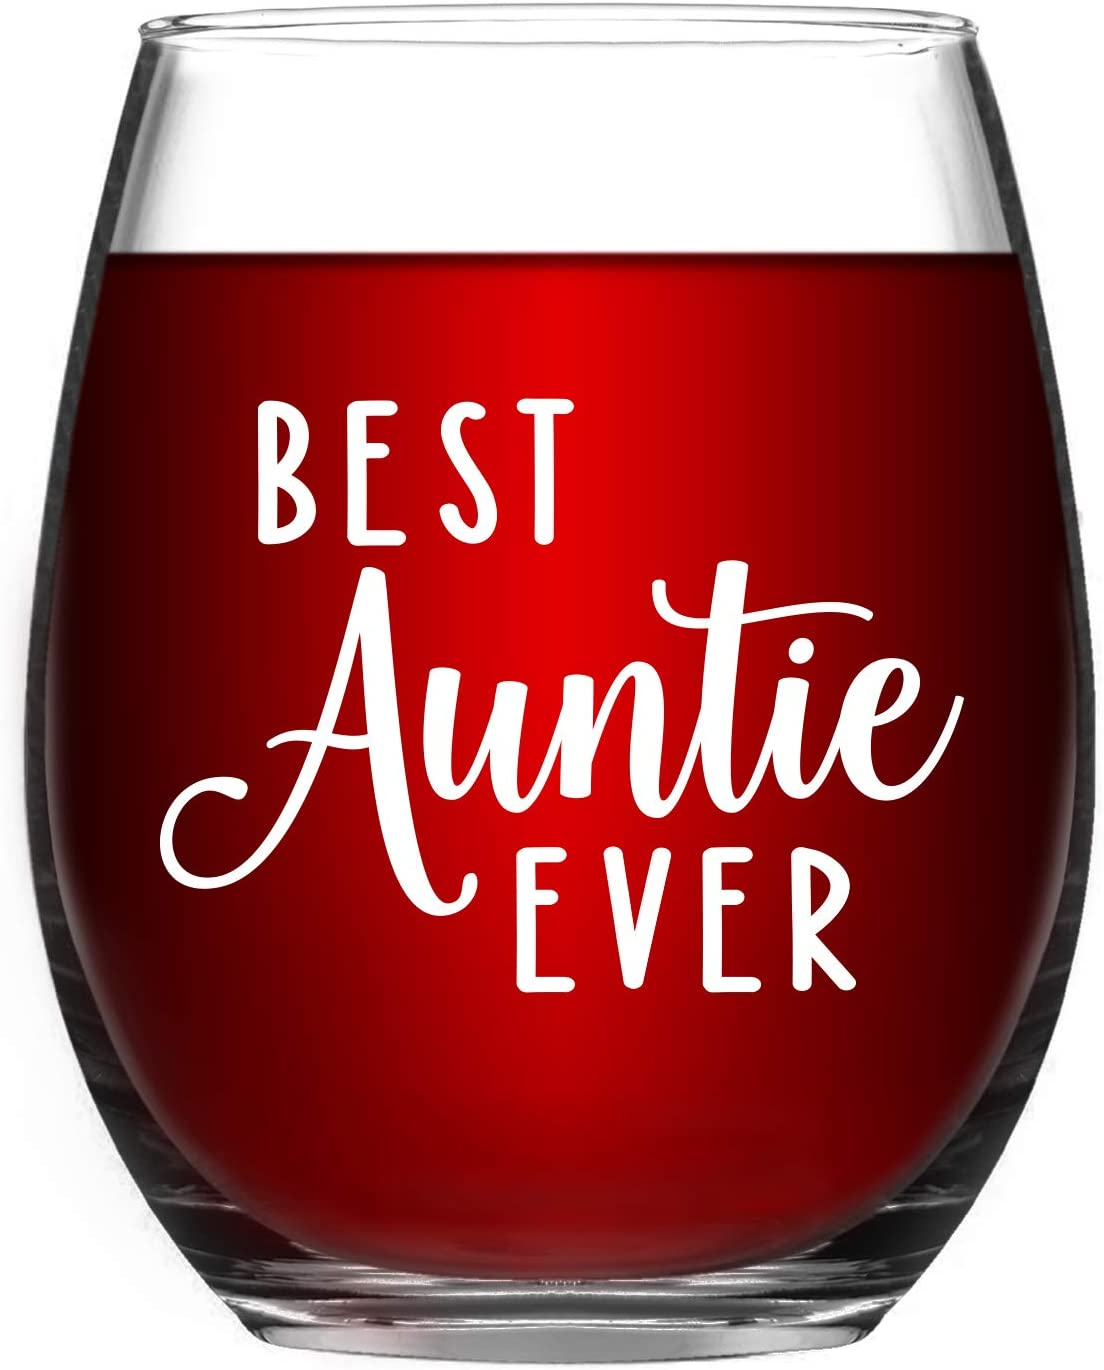 Aunt Gifts - Aunt Wine Glass 15 Oz, Best Auntie Ever Gift for Mother's Day, Birthday, Pregnancy Announcement, Baby Announcement - Aunt Gifts from Niece, Nephew